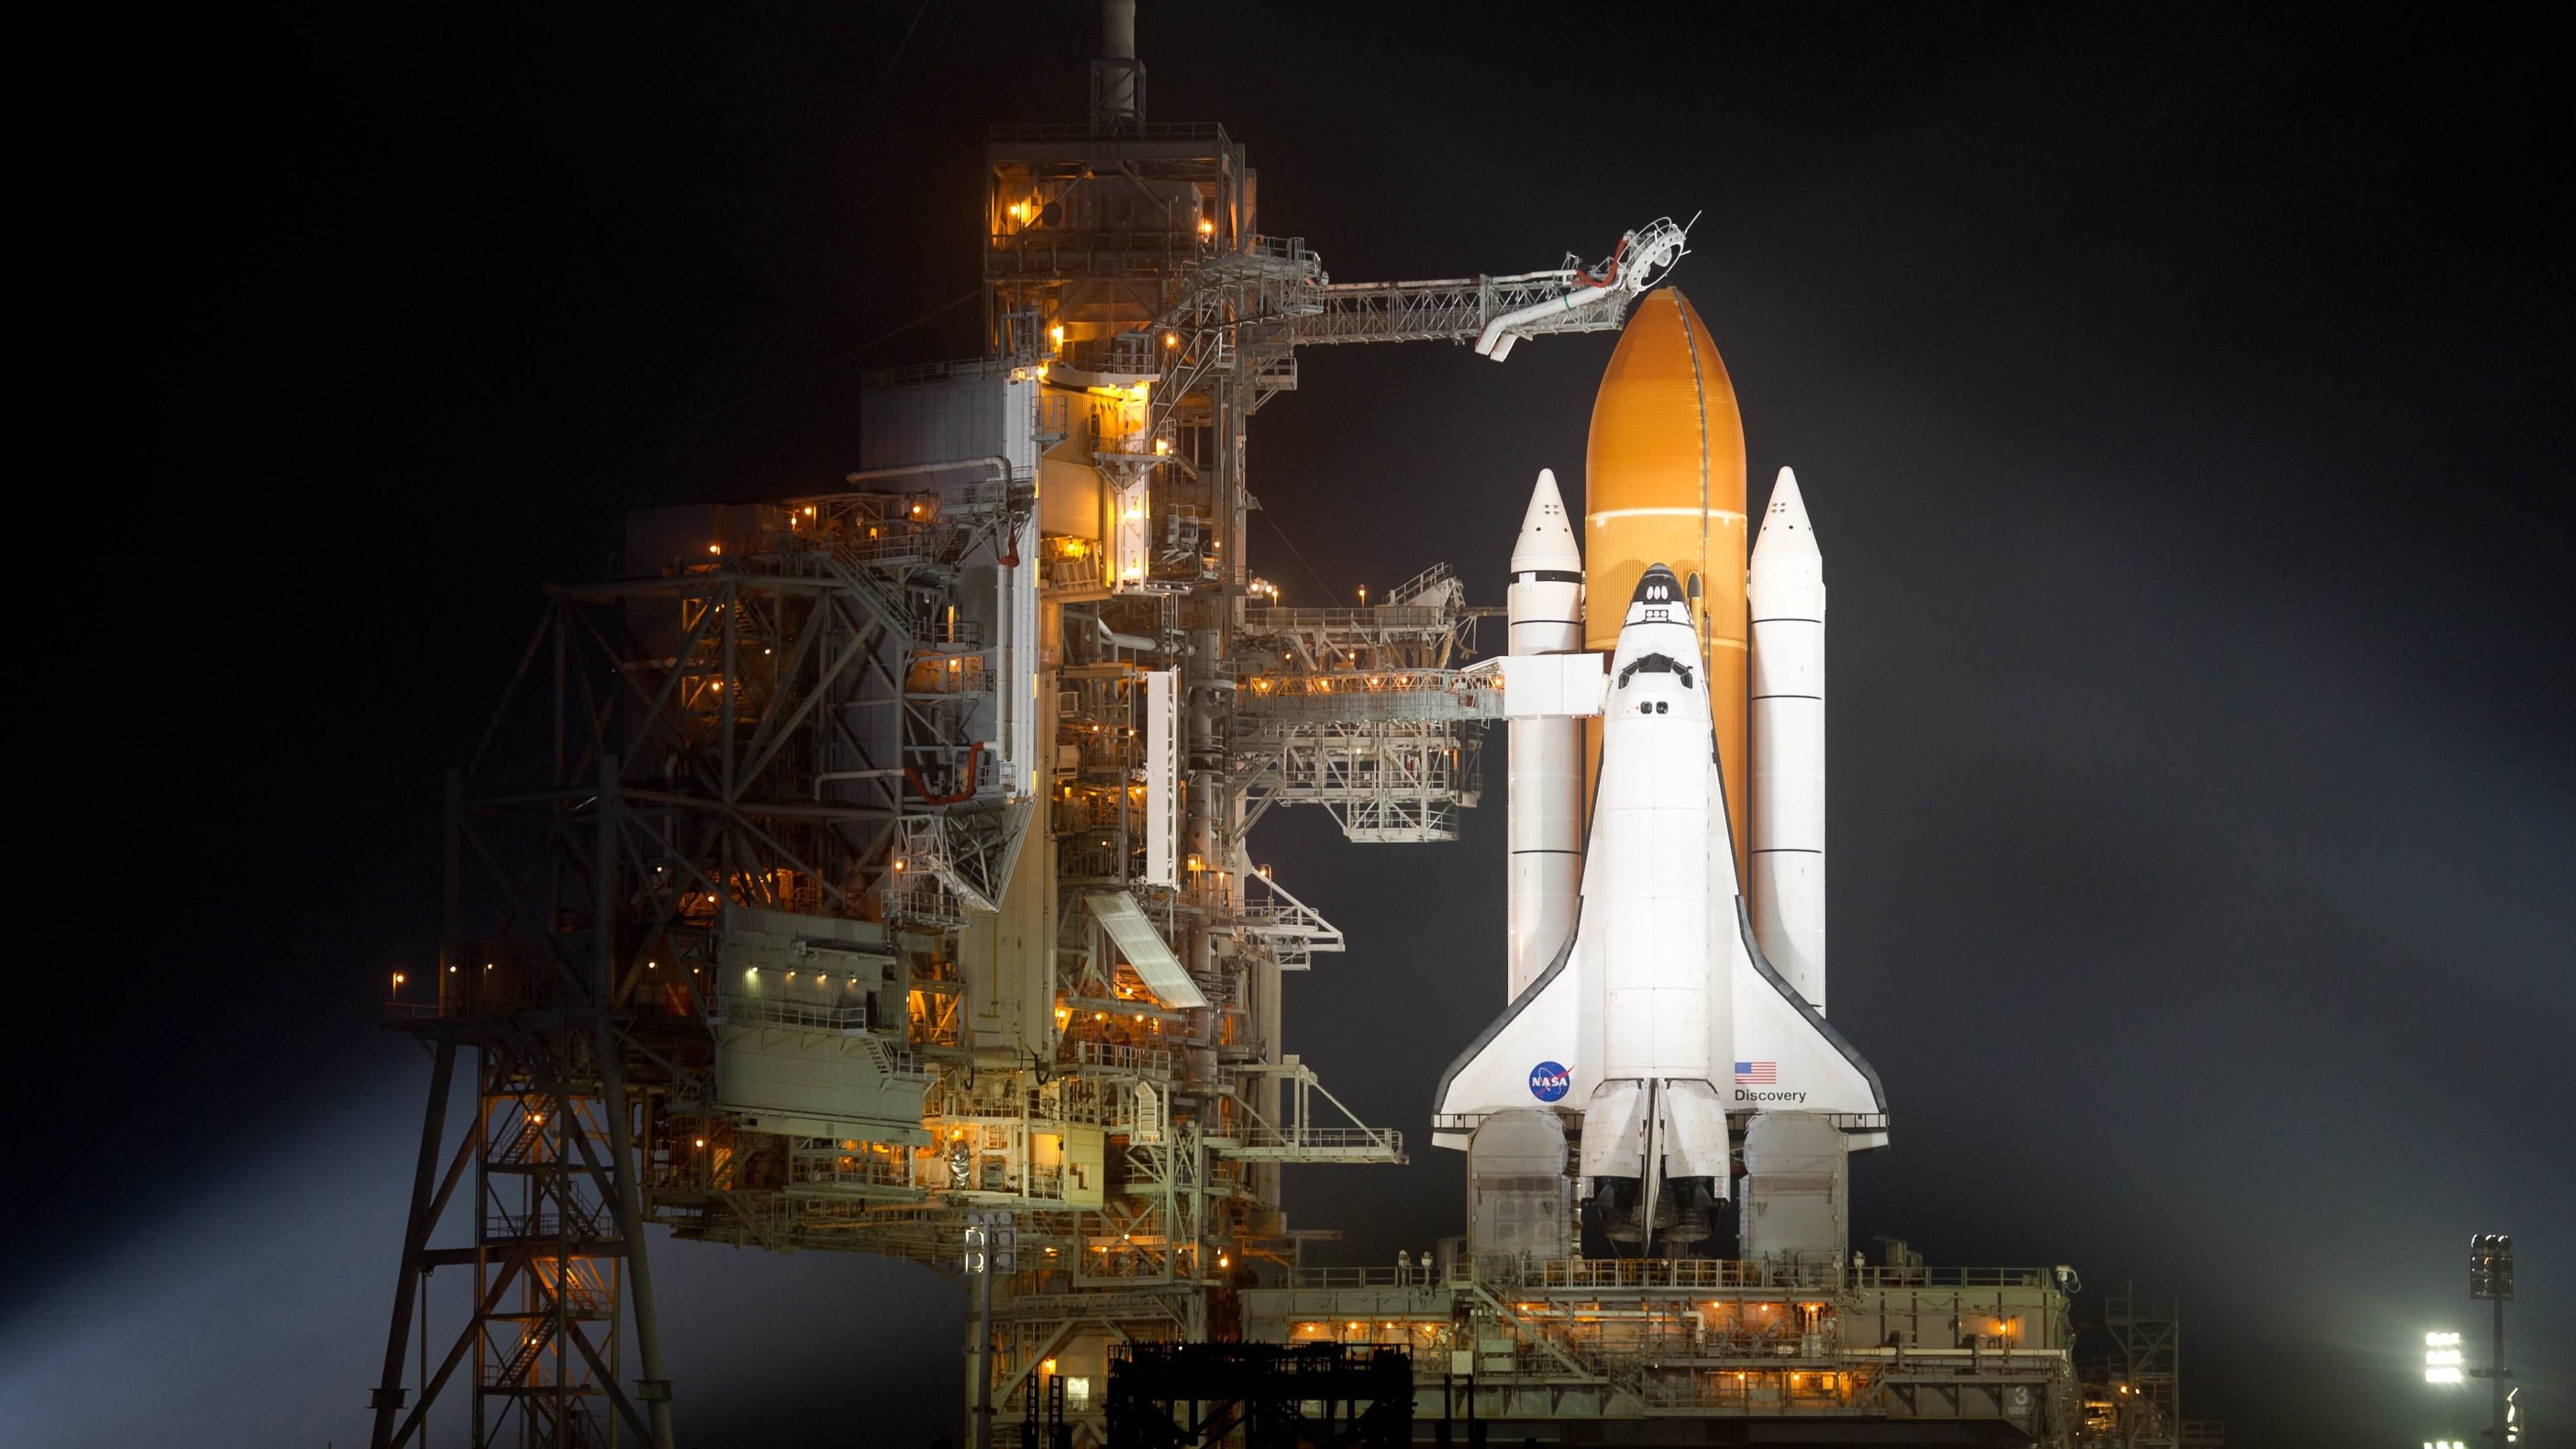 3840x2160 NASA Space Shuttles HD Wallpapers. 4K Wallpapers